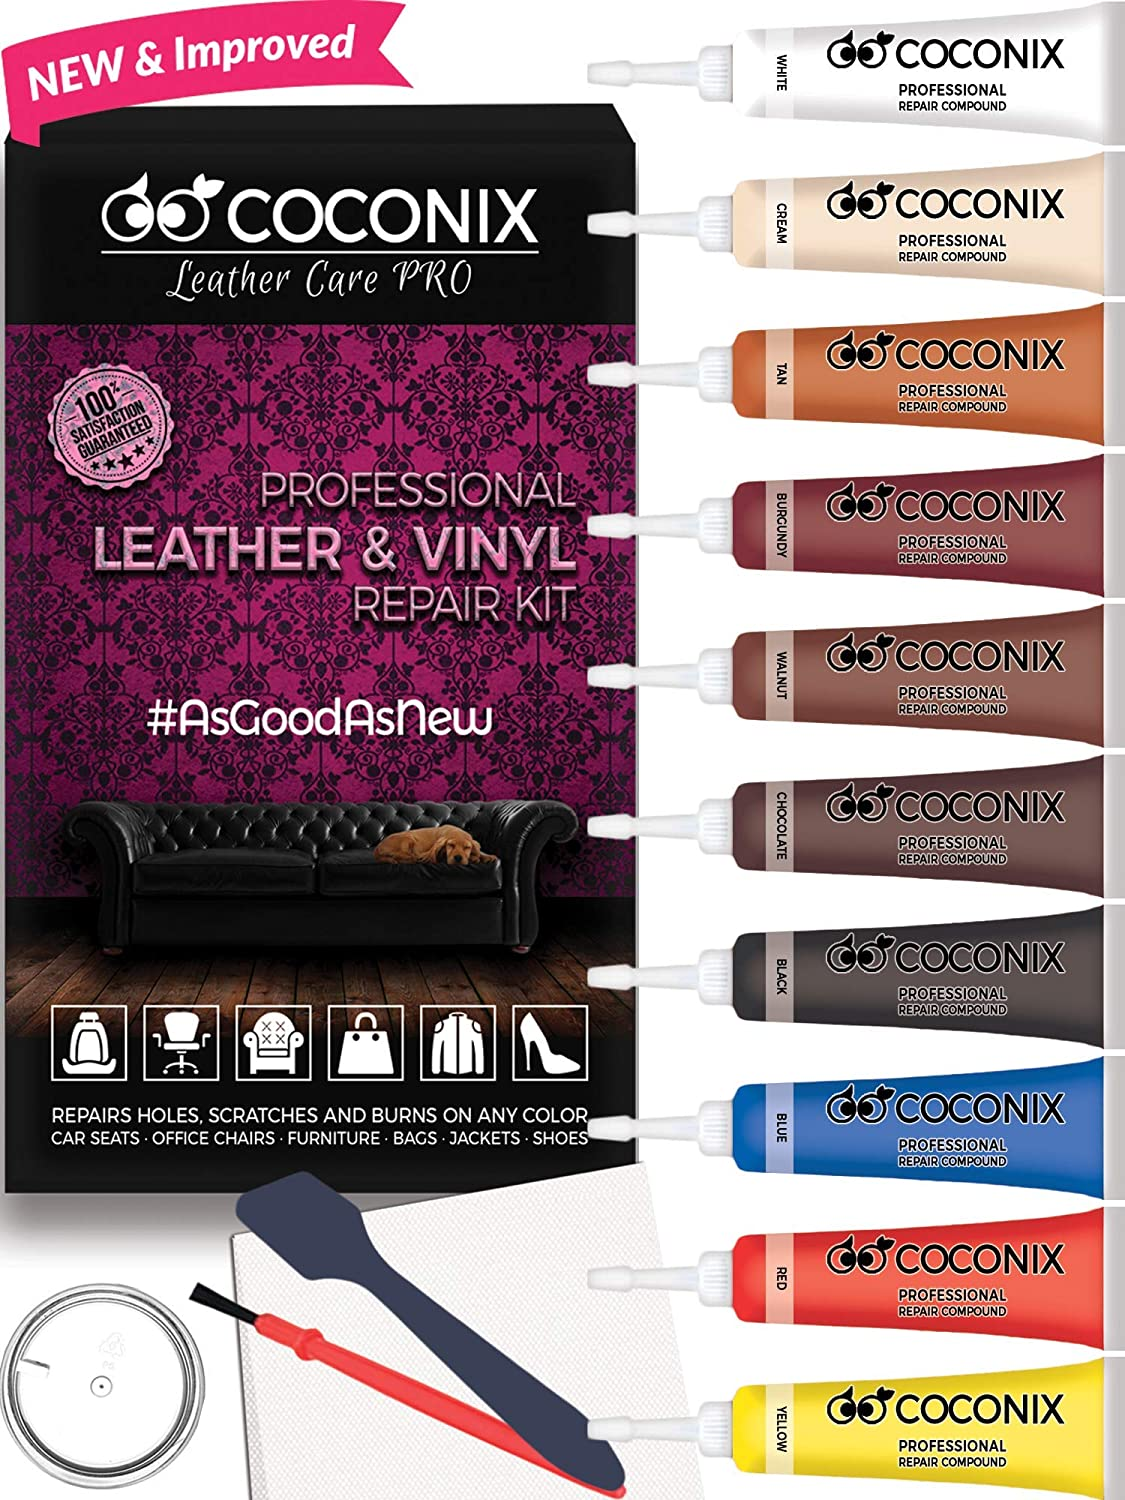 Coconix Vinyl and Leather Repair Kit - Restorer of Your Furniture, Jacket, Sofa, Boat or Car Seat